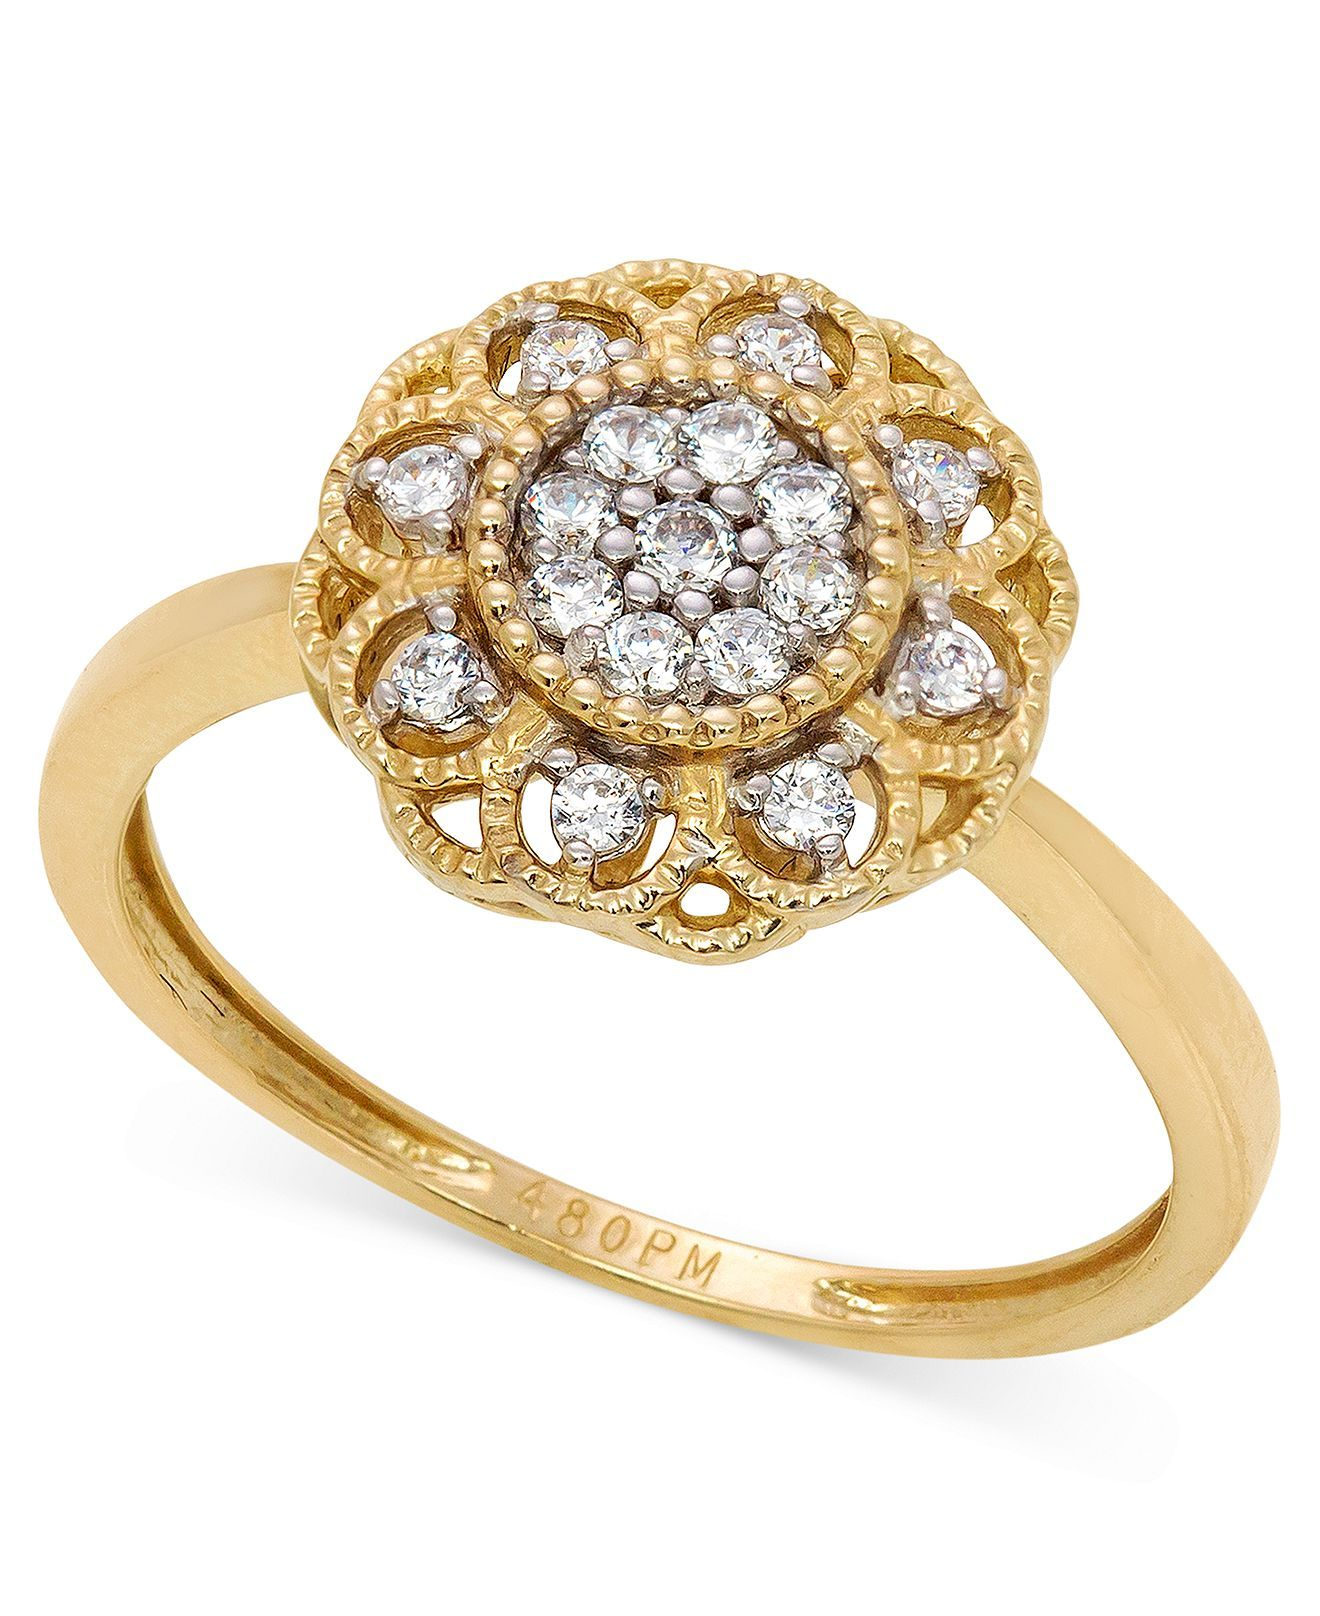 YellOra™ Diamond Ring YellOra™ Diamond Cluster Flower Ring 1 4 ct